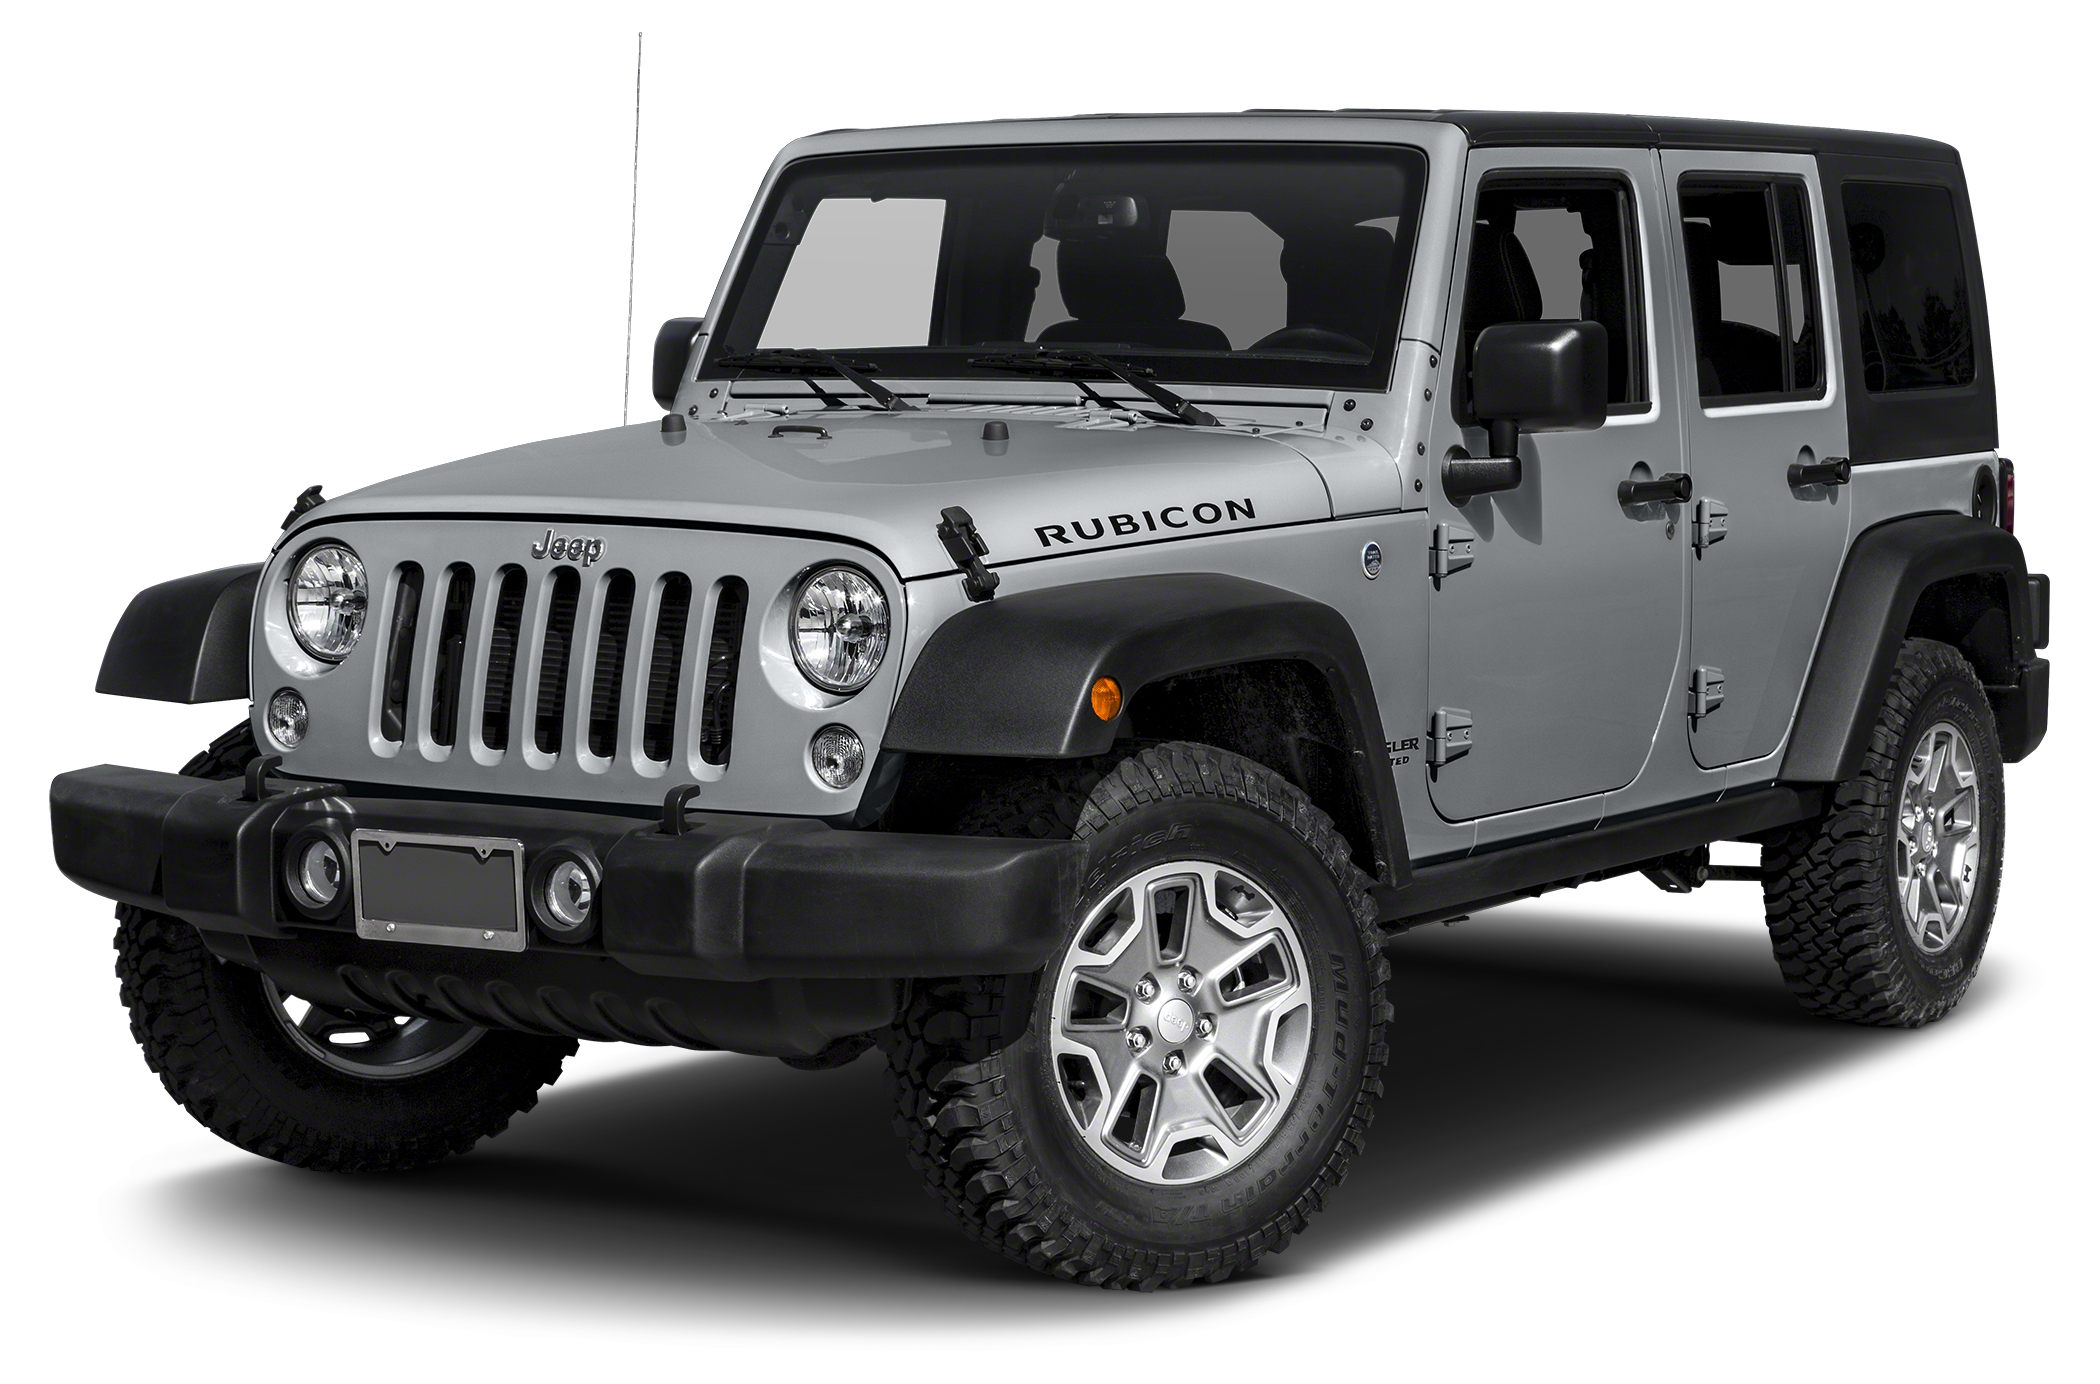 2015 Jeep Wrangler Unlimited Rubicon CLEAN CARFAX NO ACCIDENTS REPORTED ONE OWNER SERVICE RECOR